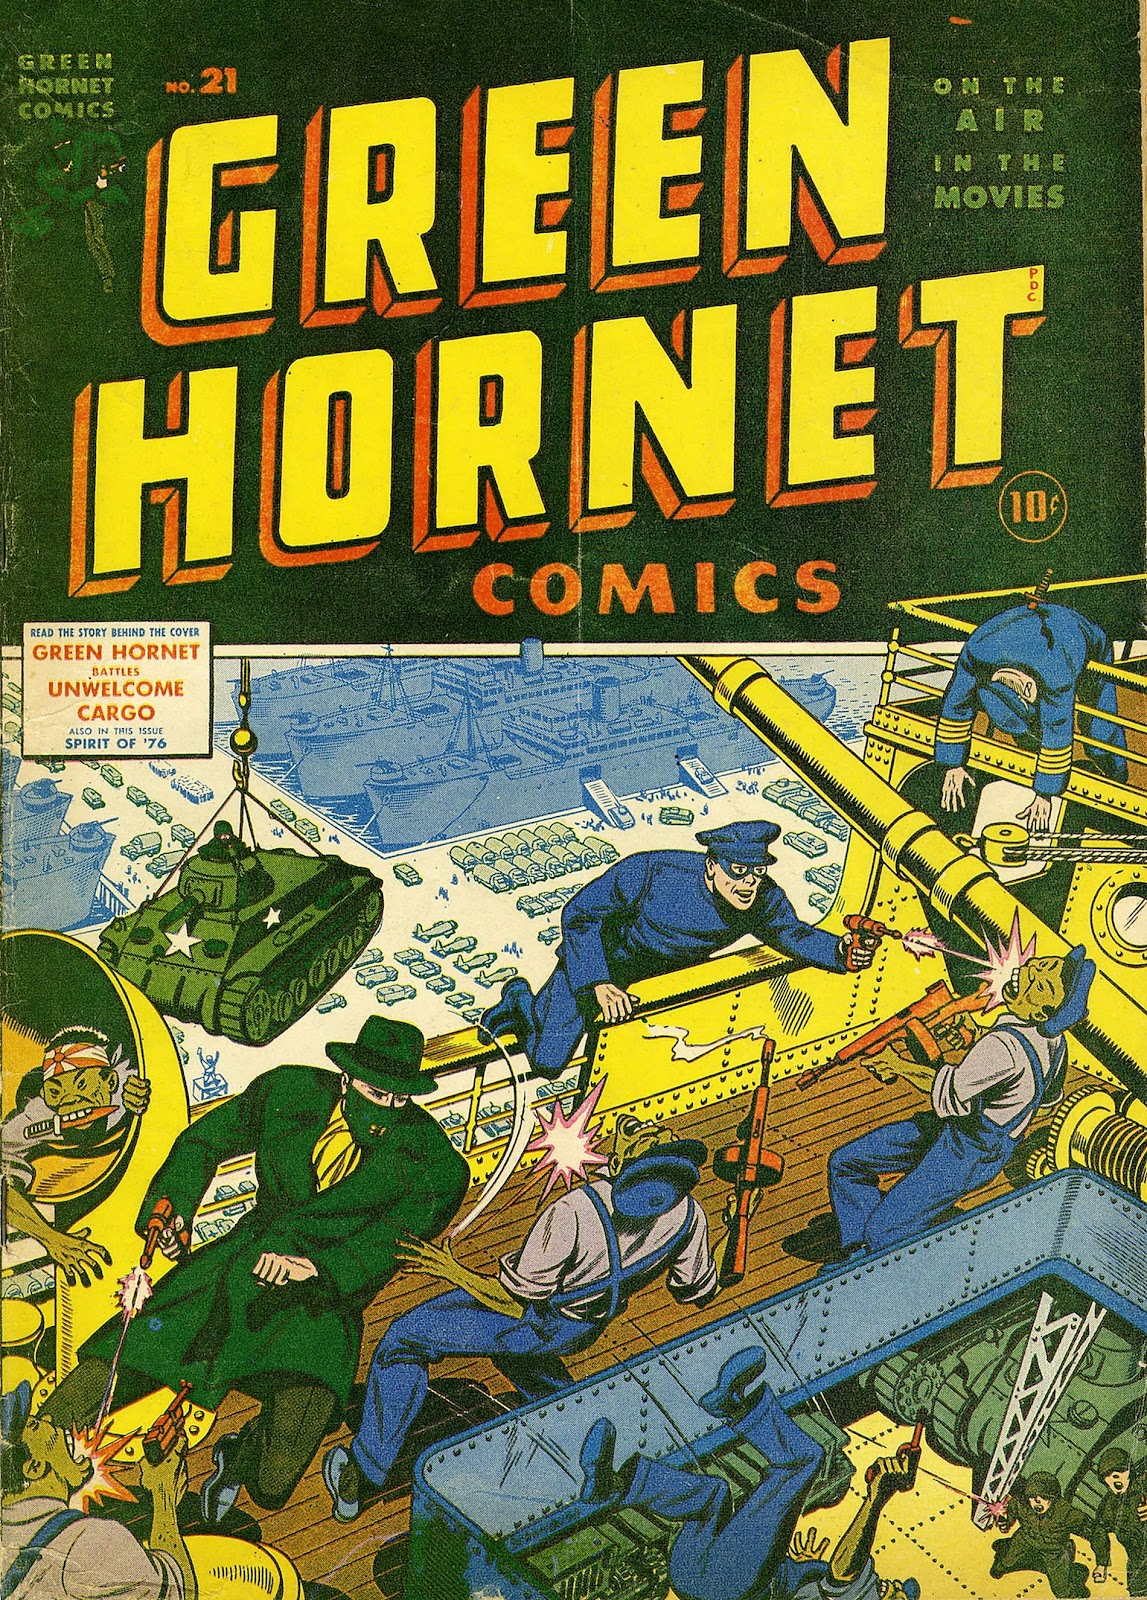 Green Hornet Comics issue 21 - Page 1